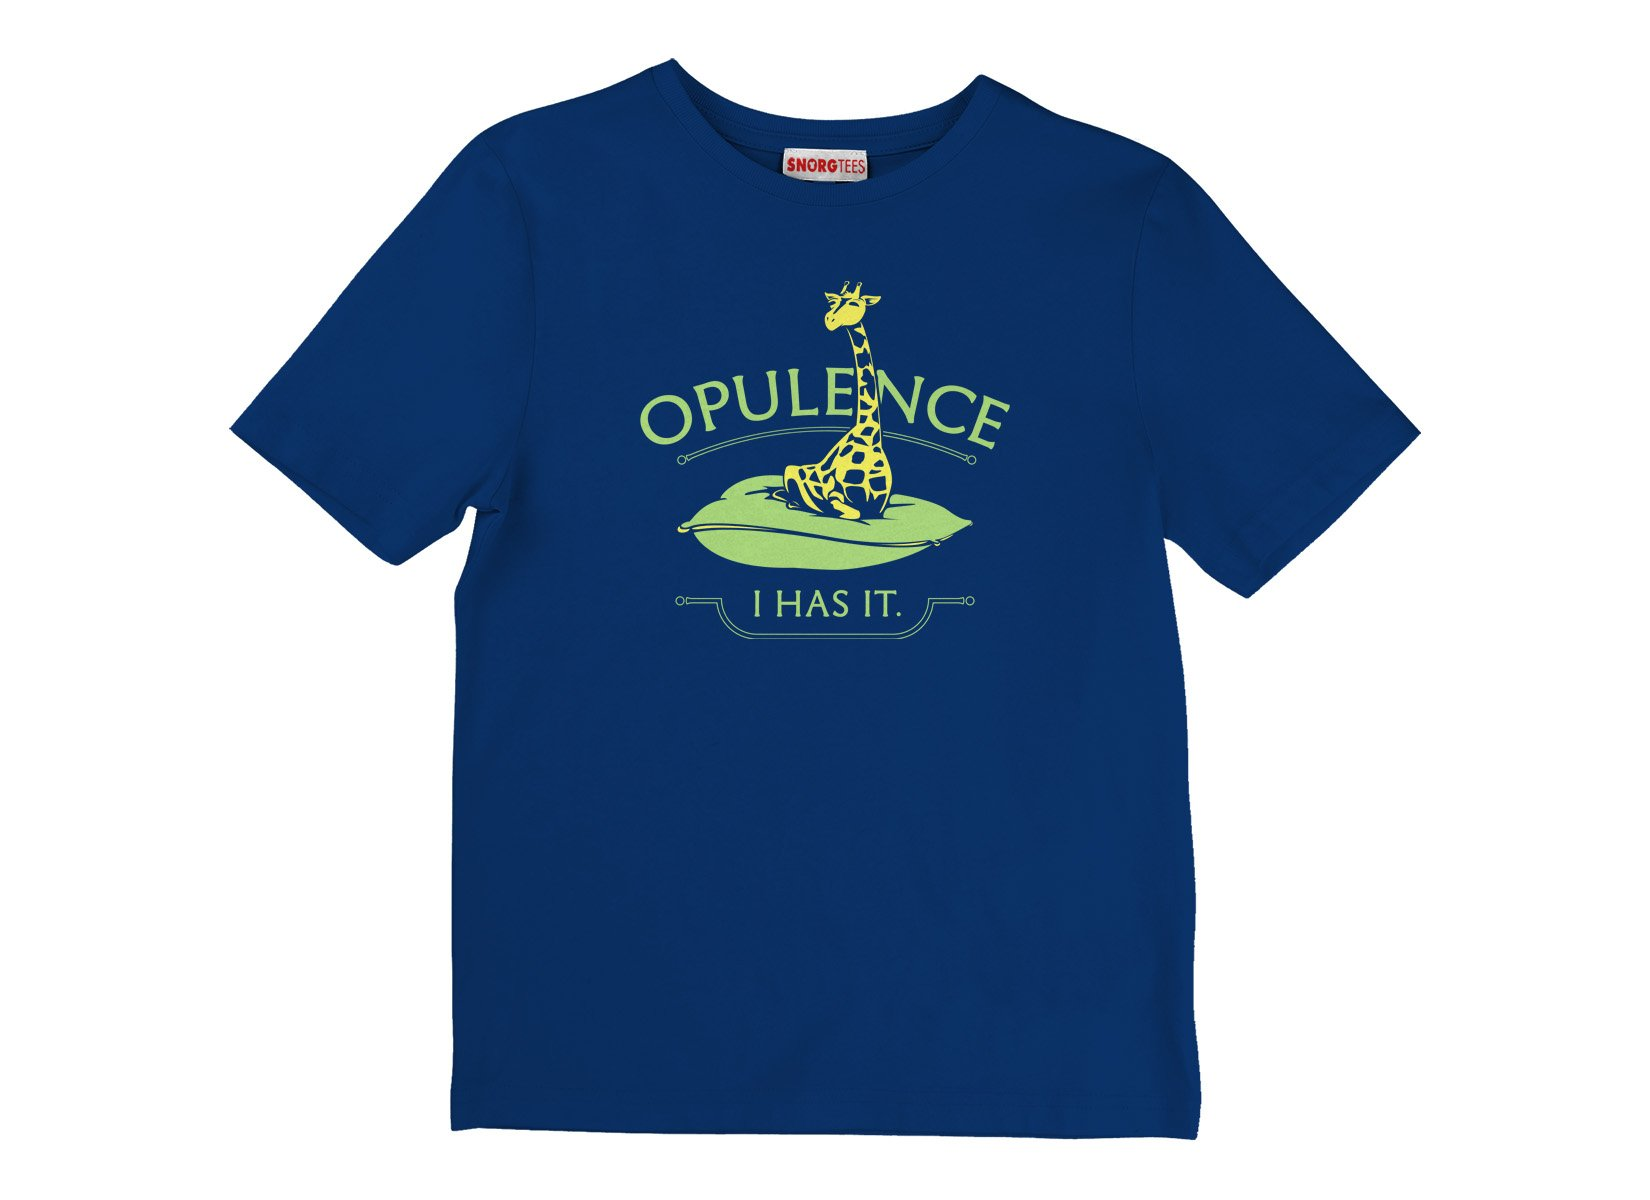 Opulence, I Has It. on Kids T-Shirt